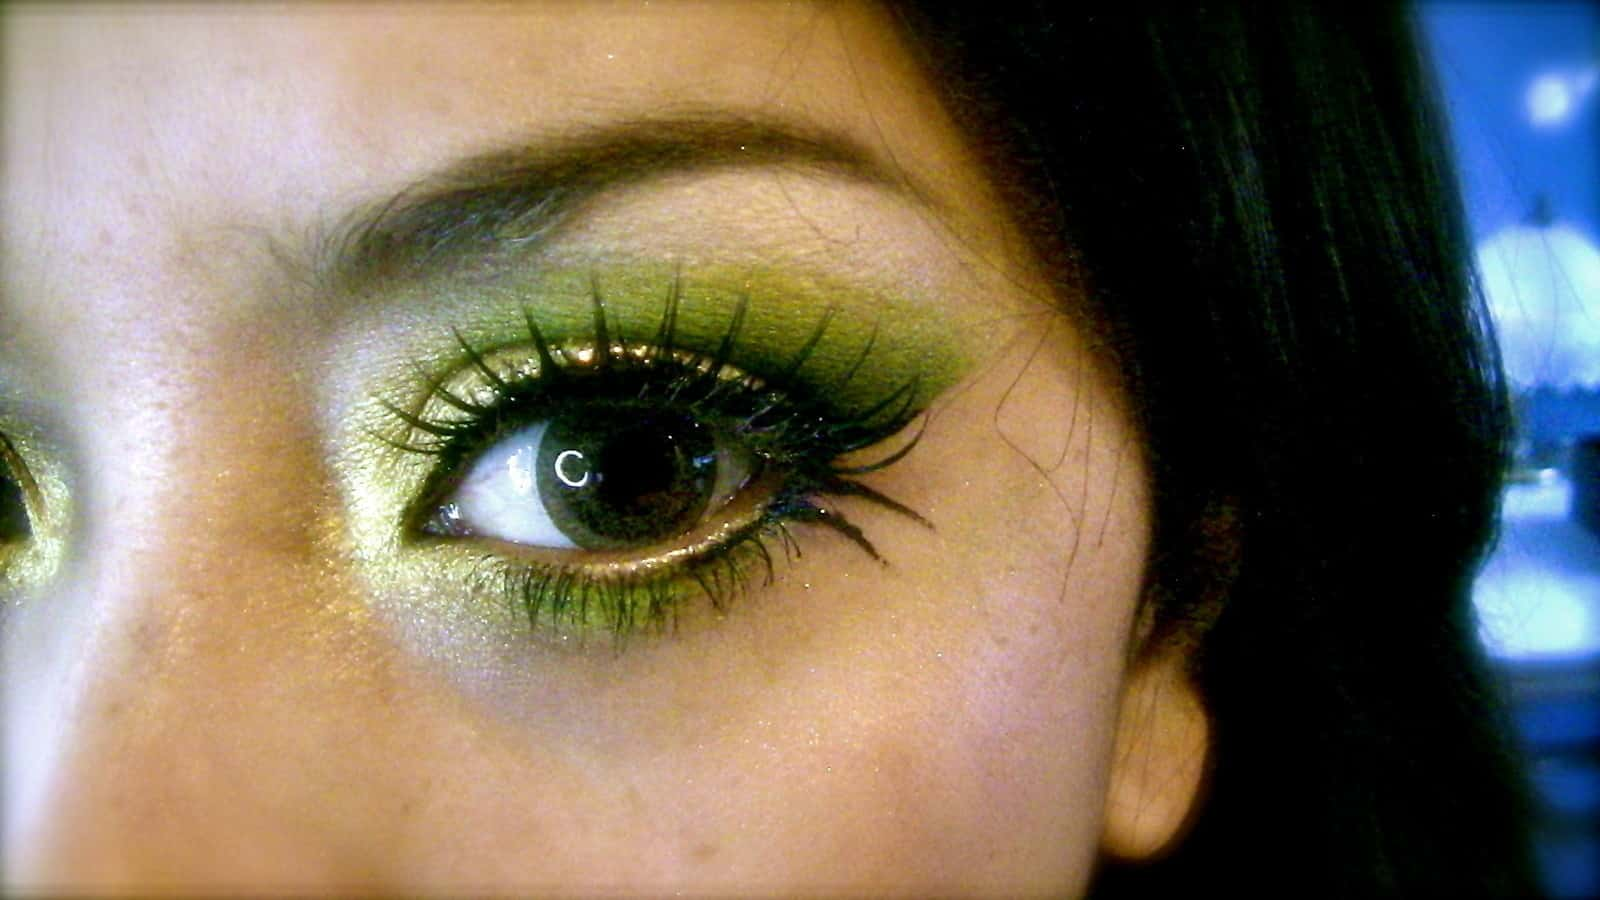 Green and gold with simple mascara